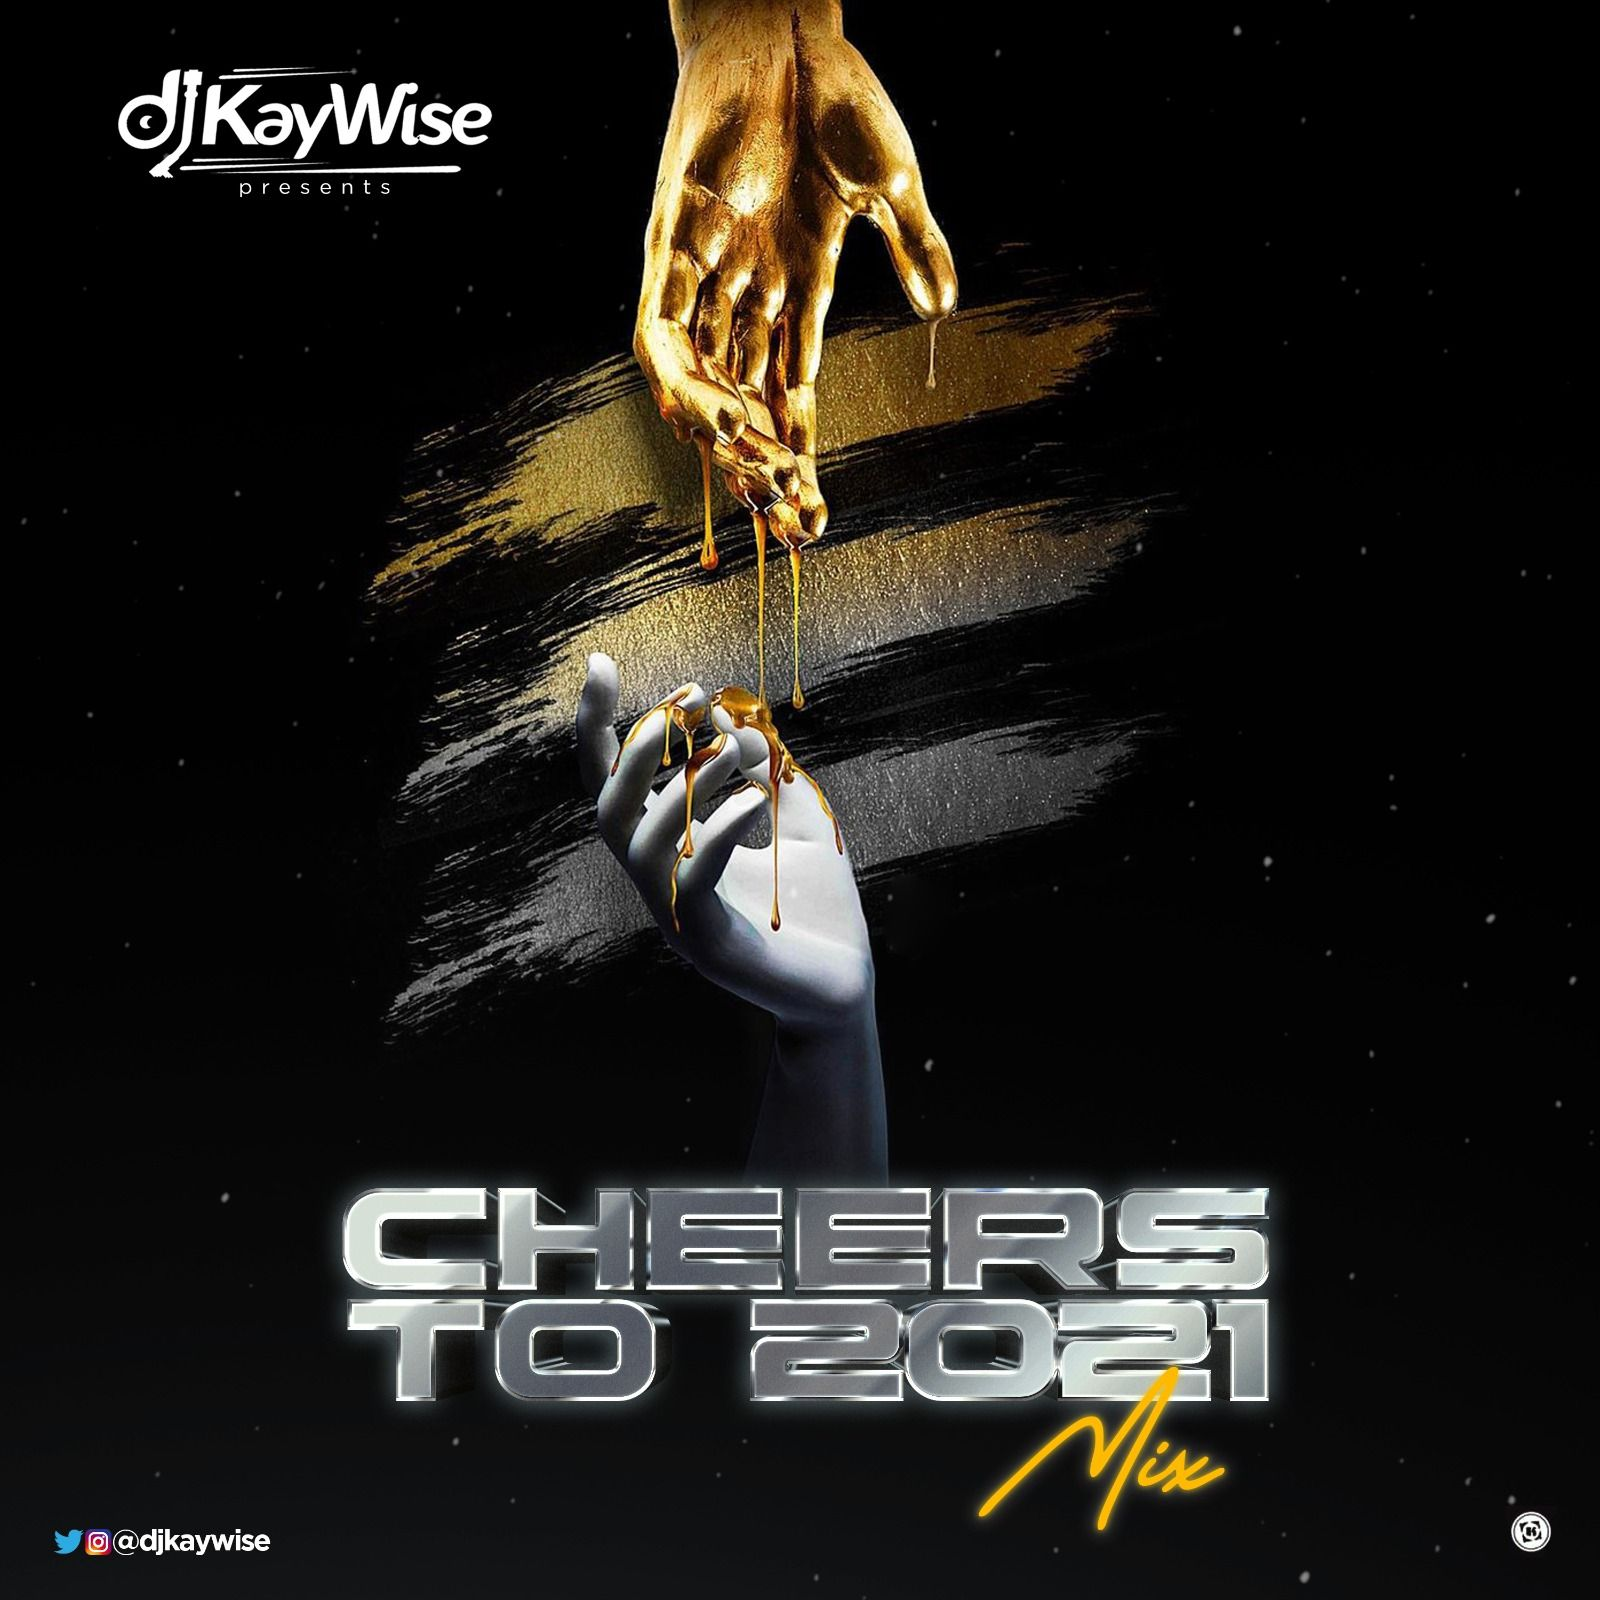 [Mixtape] DJ Kaywise – Cheers To 2021